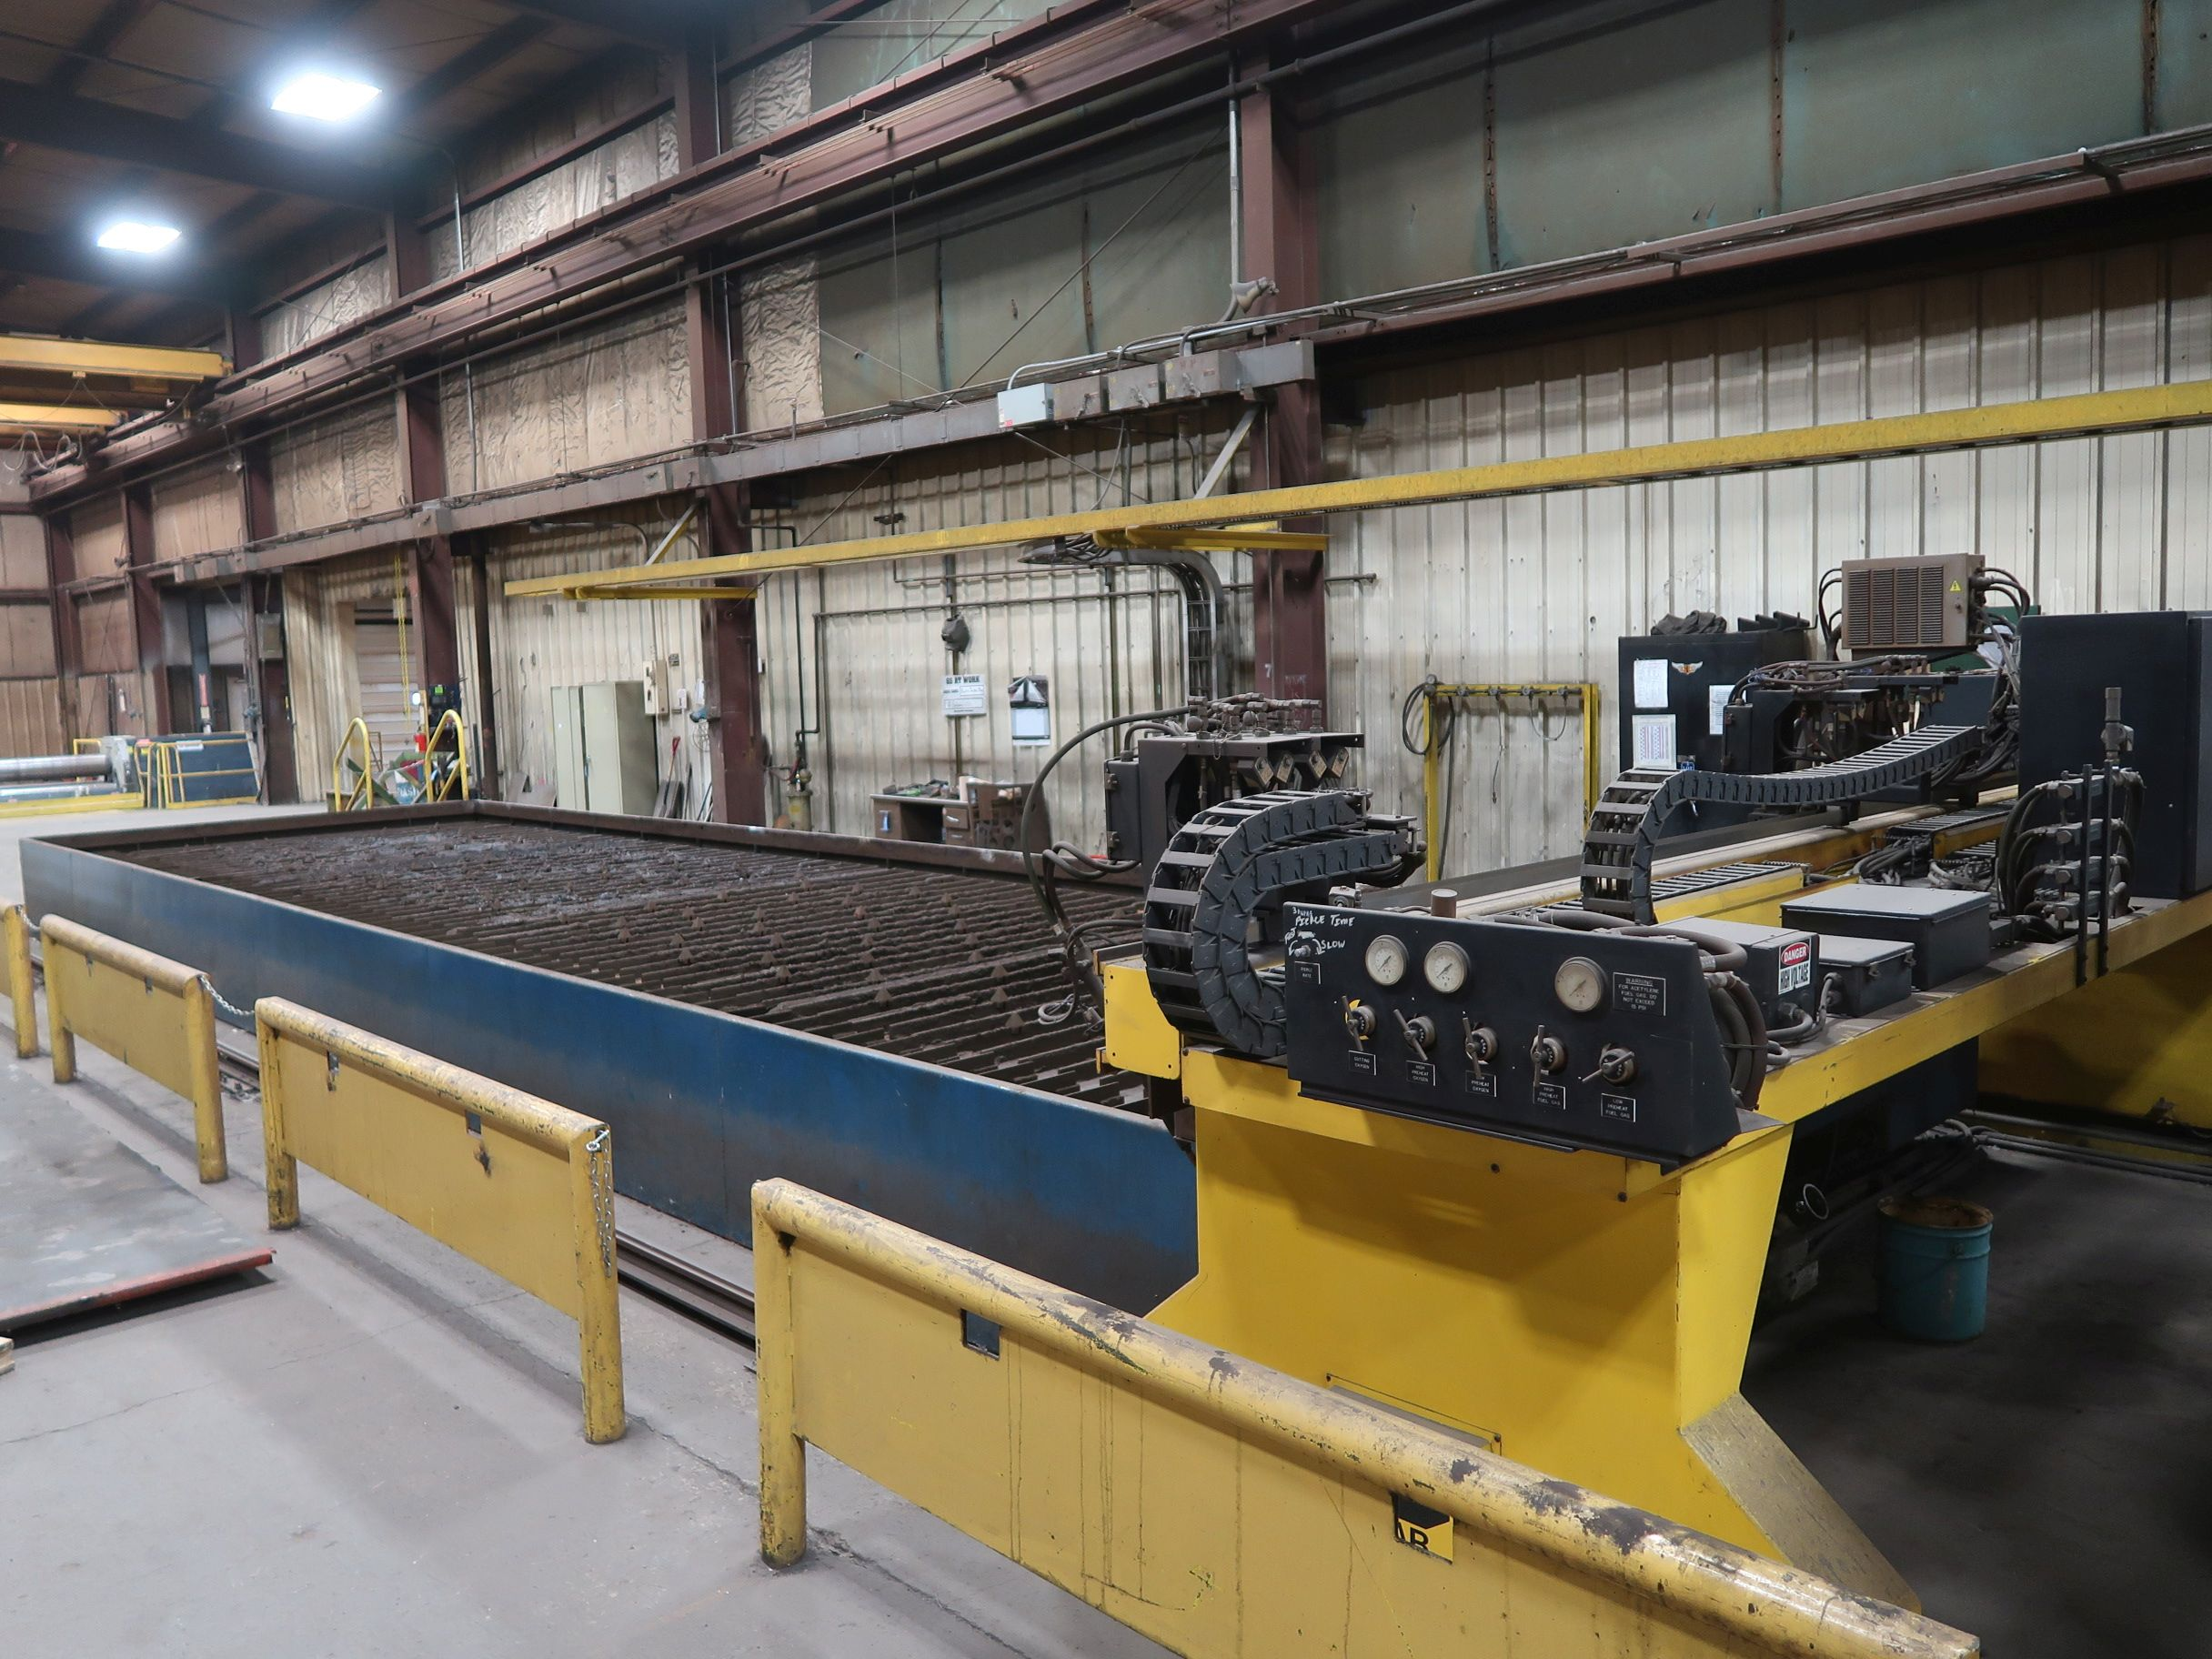 12' X 40' ESAB MODEL AVENGER 1-12 VISION PLASMA TABLE W/ BURNY 10 CONTROL; S/N 0560986386, UPDATED - Image 4 of 23